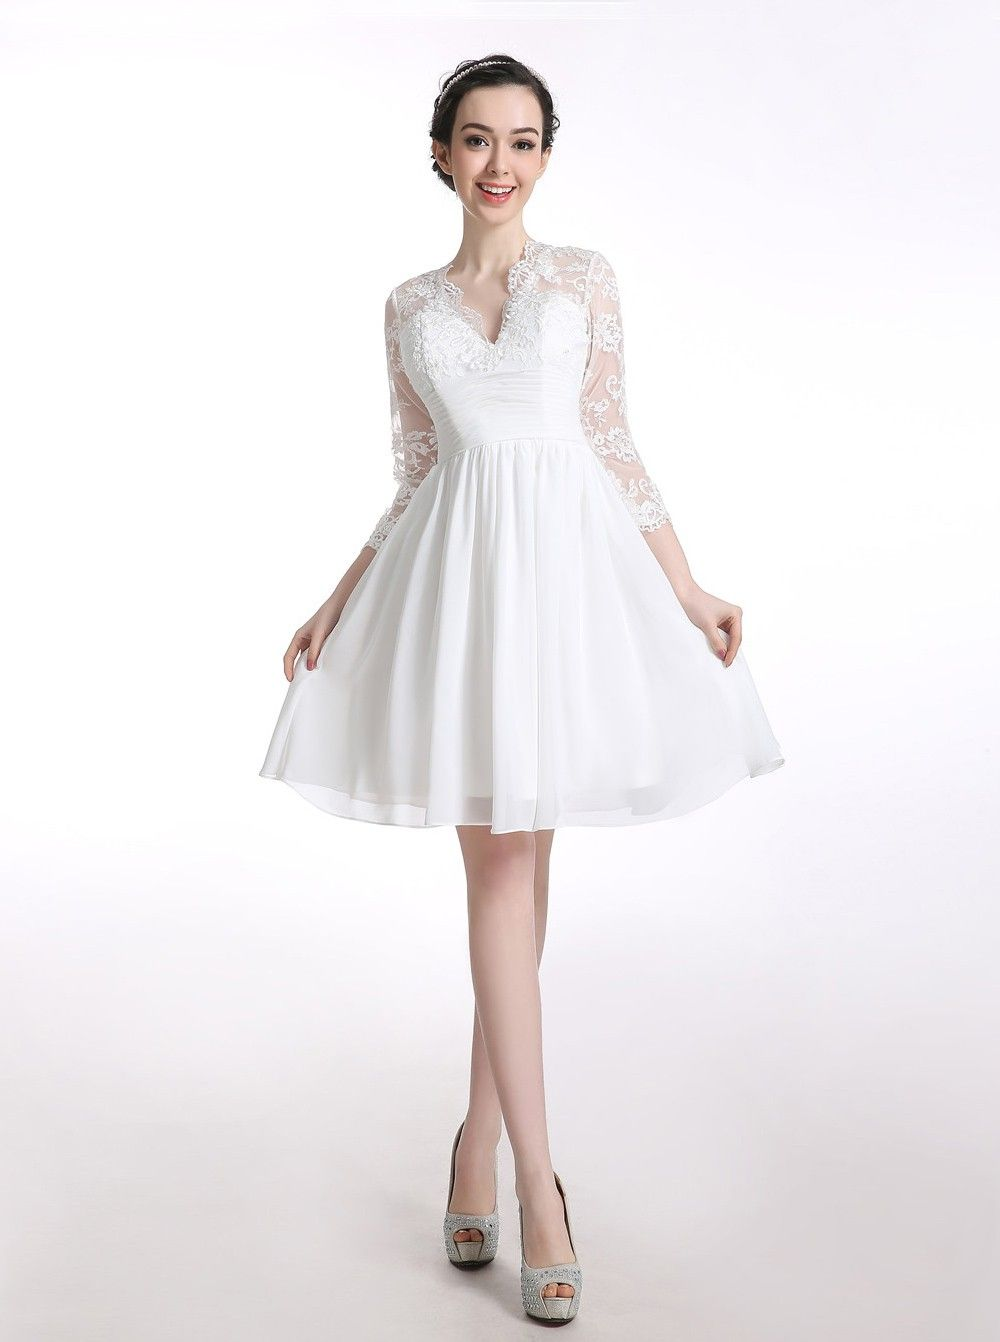 v-neck chiffon long sleeves white short homecoming/prom